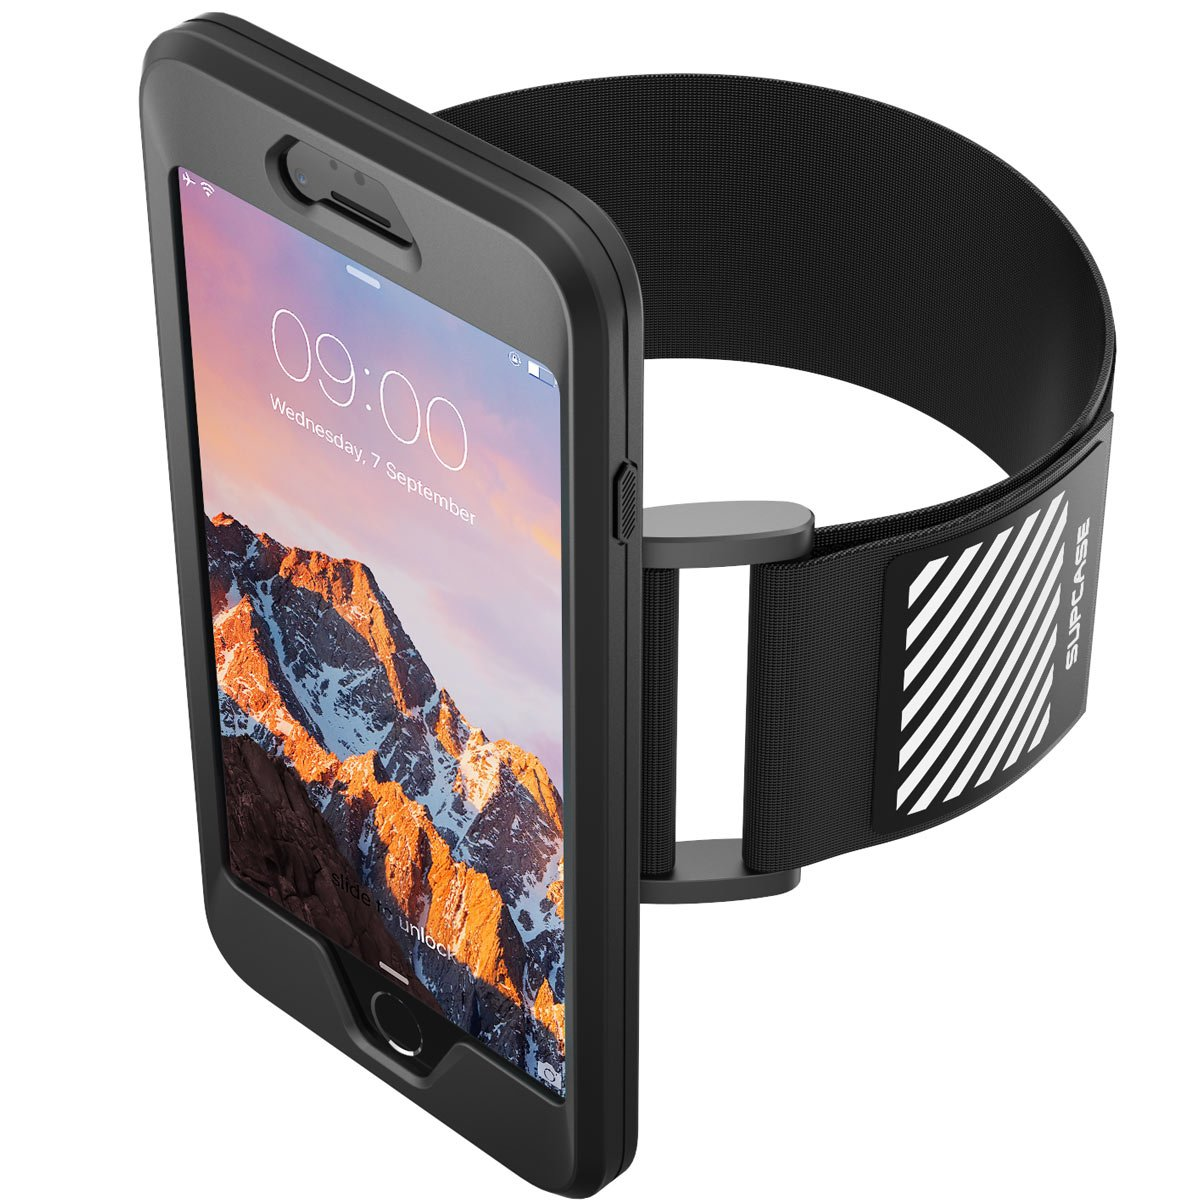 iPhone 7 Plus Armband, iPhone 8 Plus Armband, SUPCASE Easy Fitting Sport Running Armband Case with Premium Flexible Case Combo for Apple iPhone 7 Plus 2016 / iPhone 8 Plus 2017 (Black) by SUPCASE (Image #3)